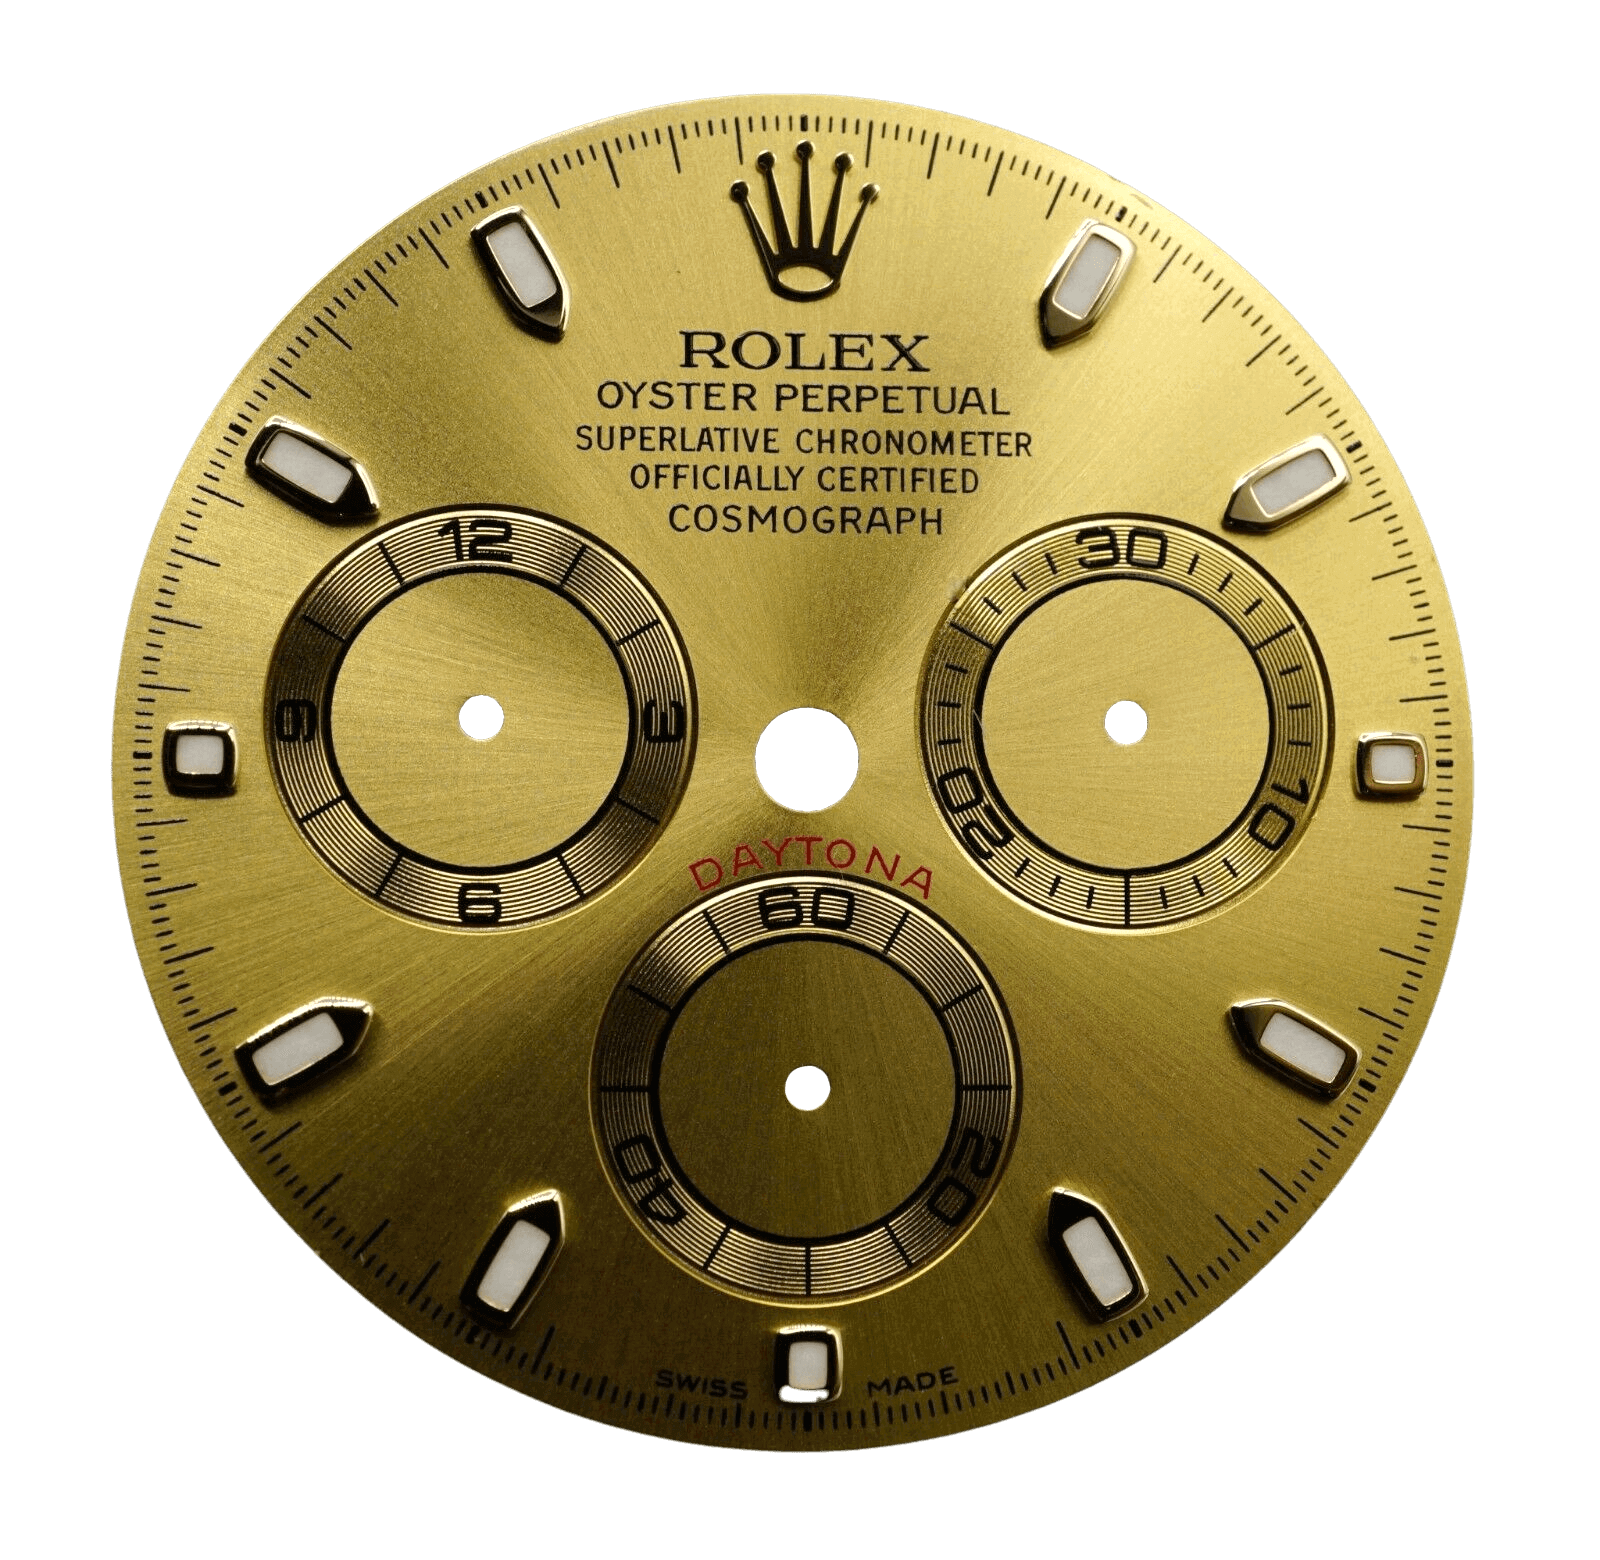 Gold dial Rolex watches